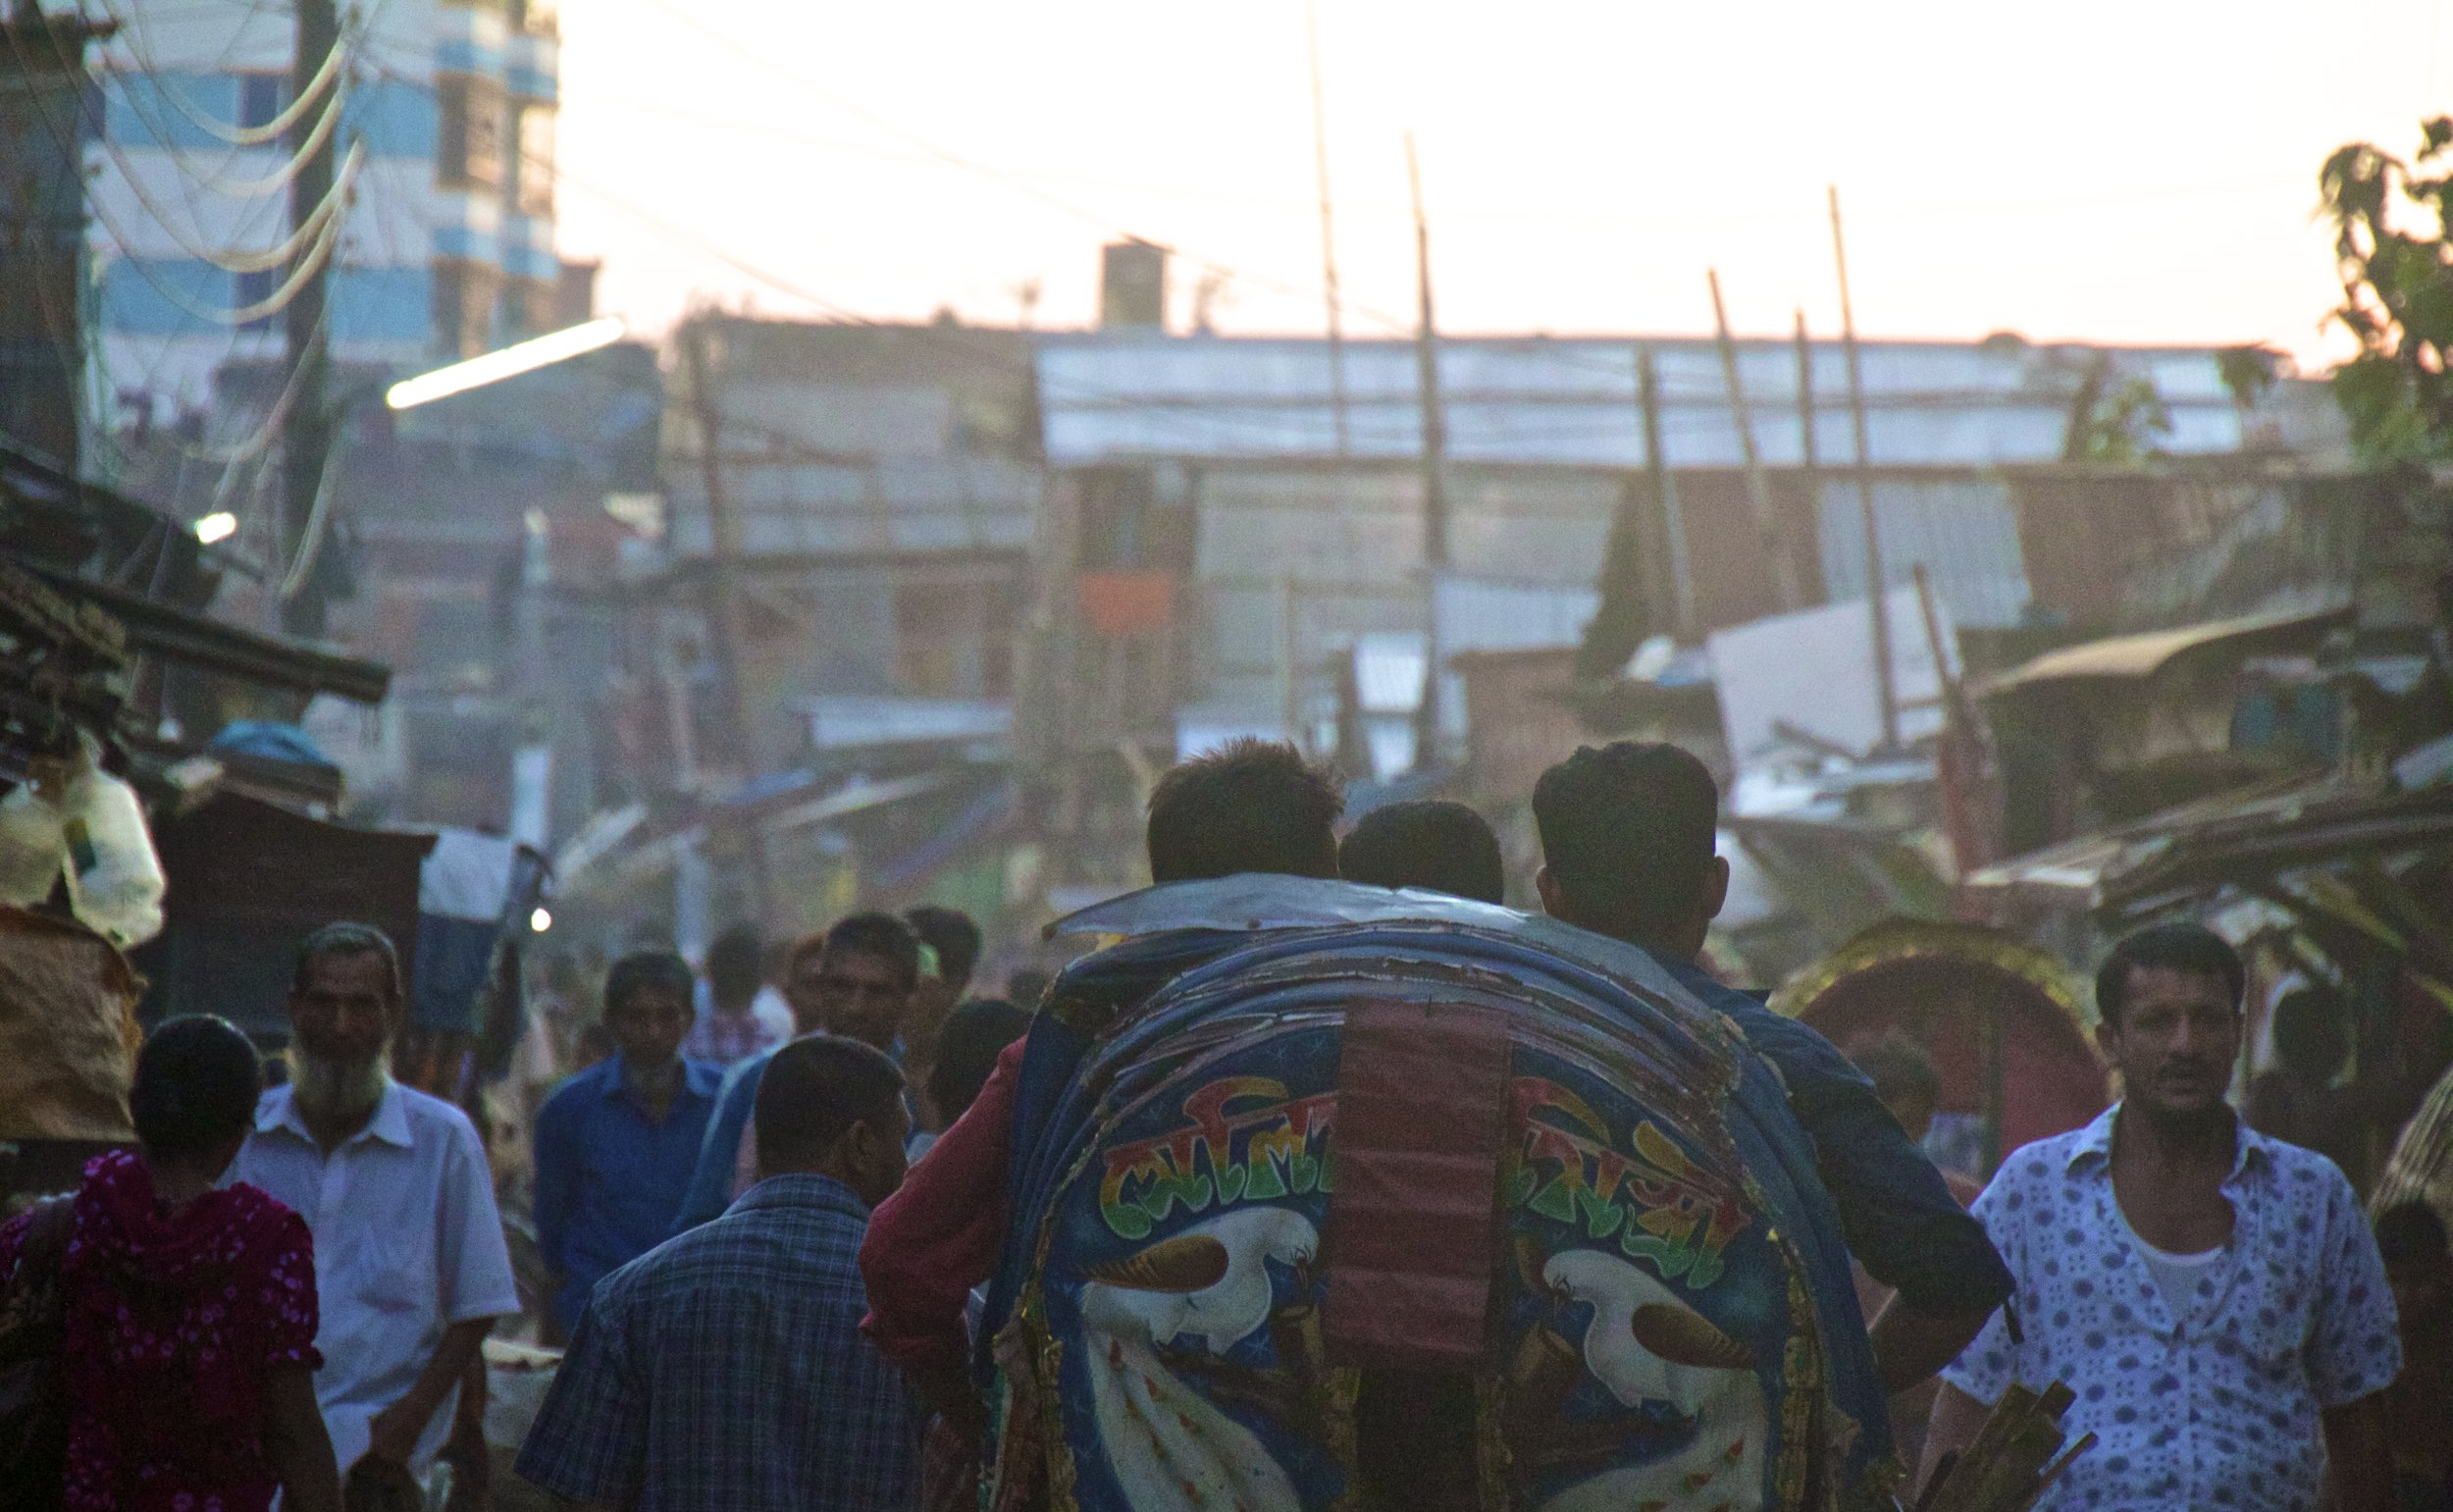 rayer bazar dhaka slums sunset 5.jpg